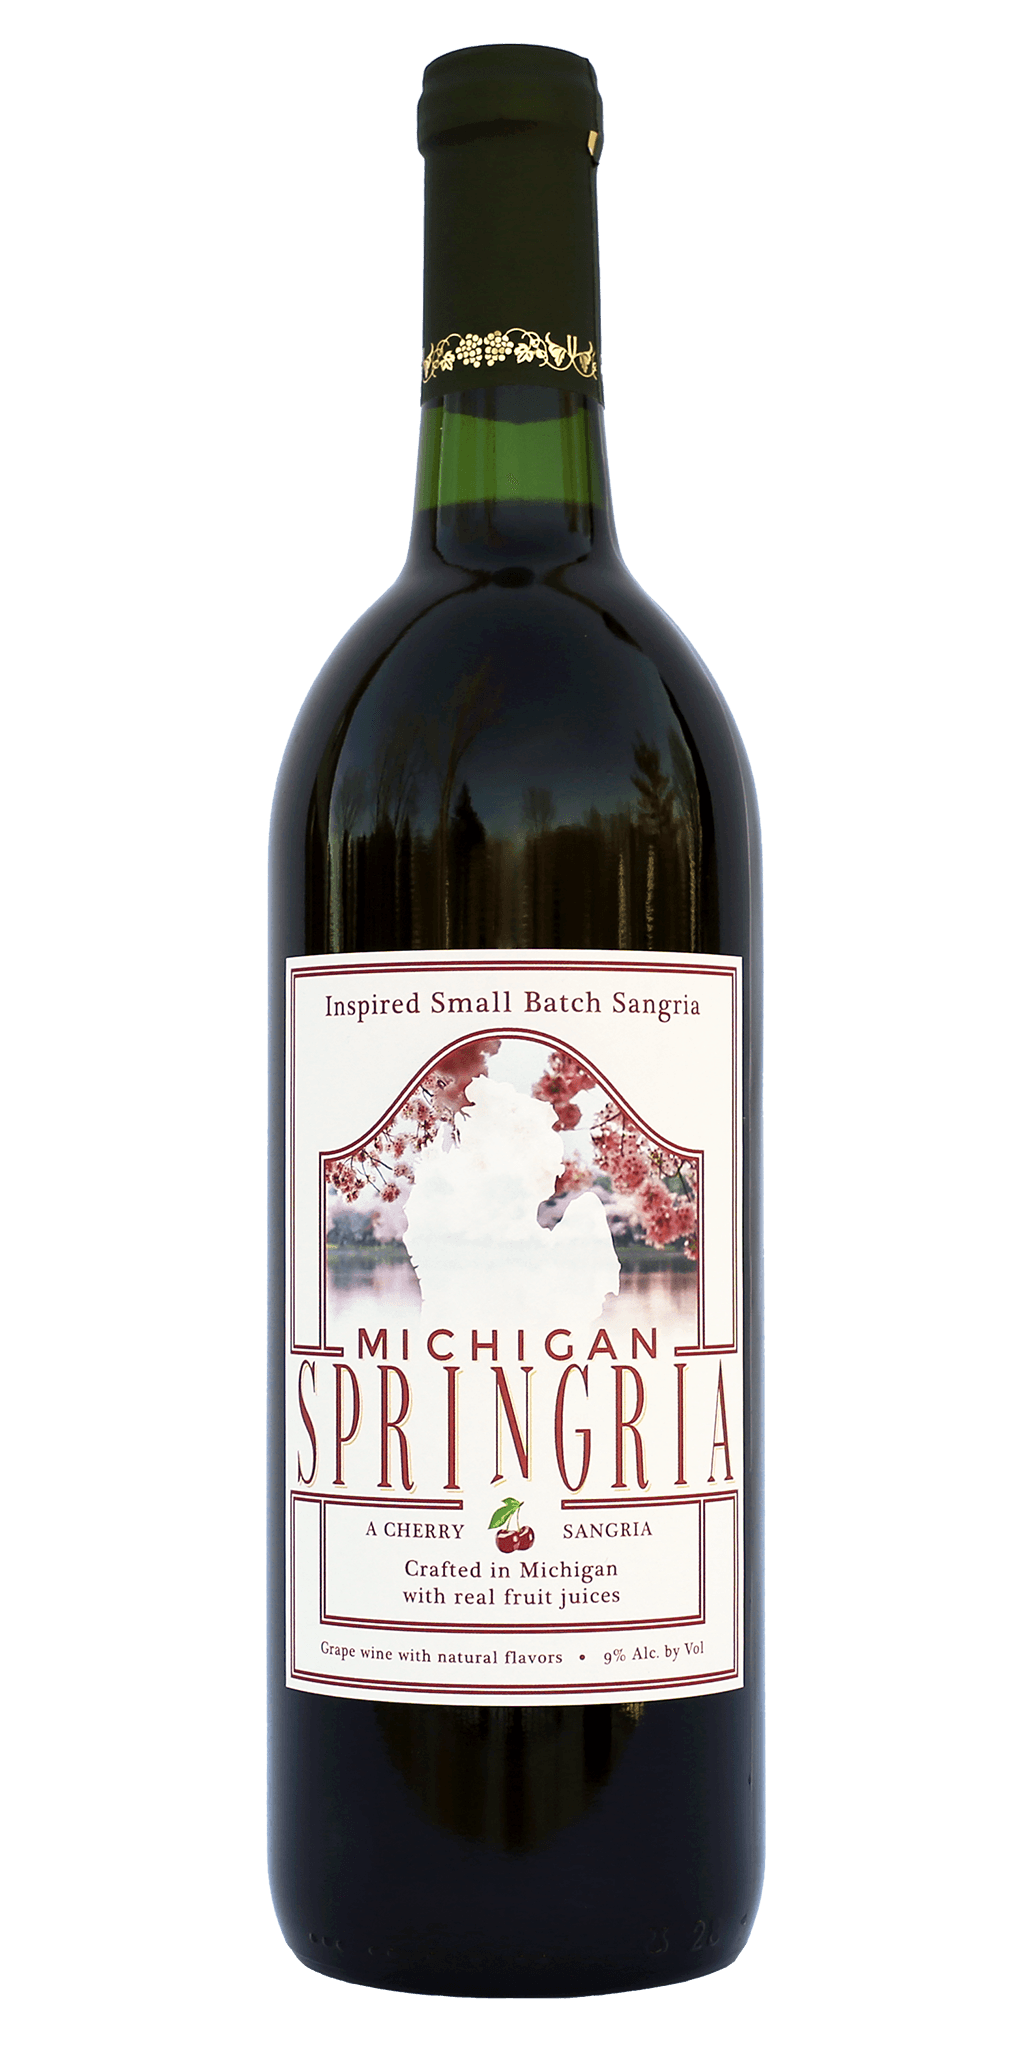 Michigan Springria — A Cherry Sangria